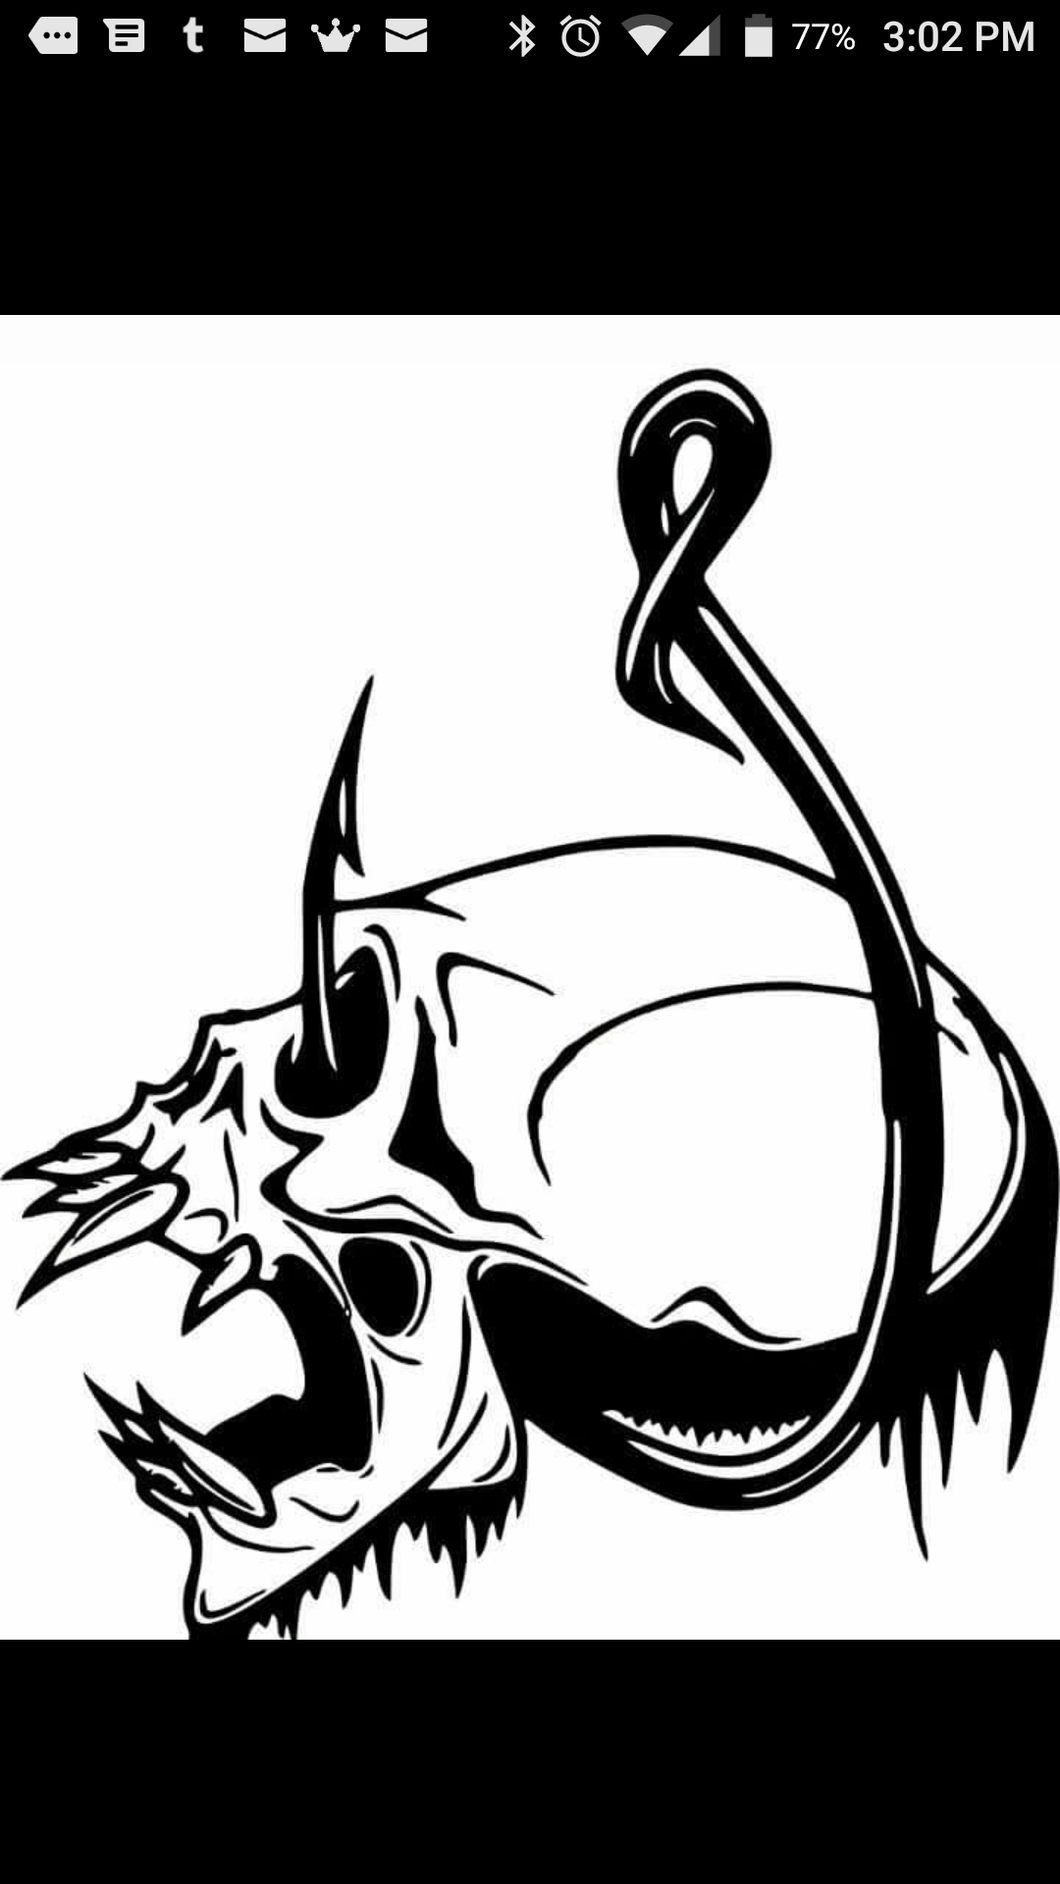 Skull and fishhook window decal 6